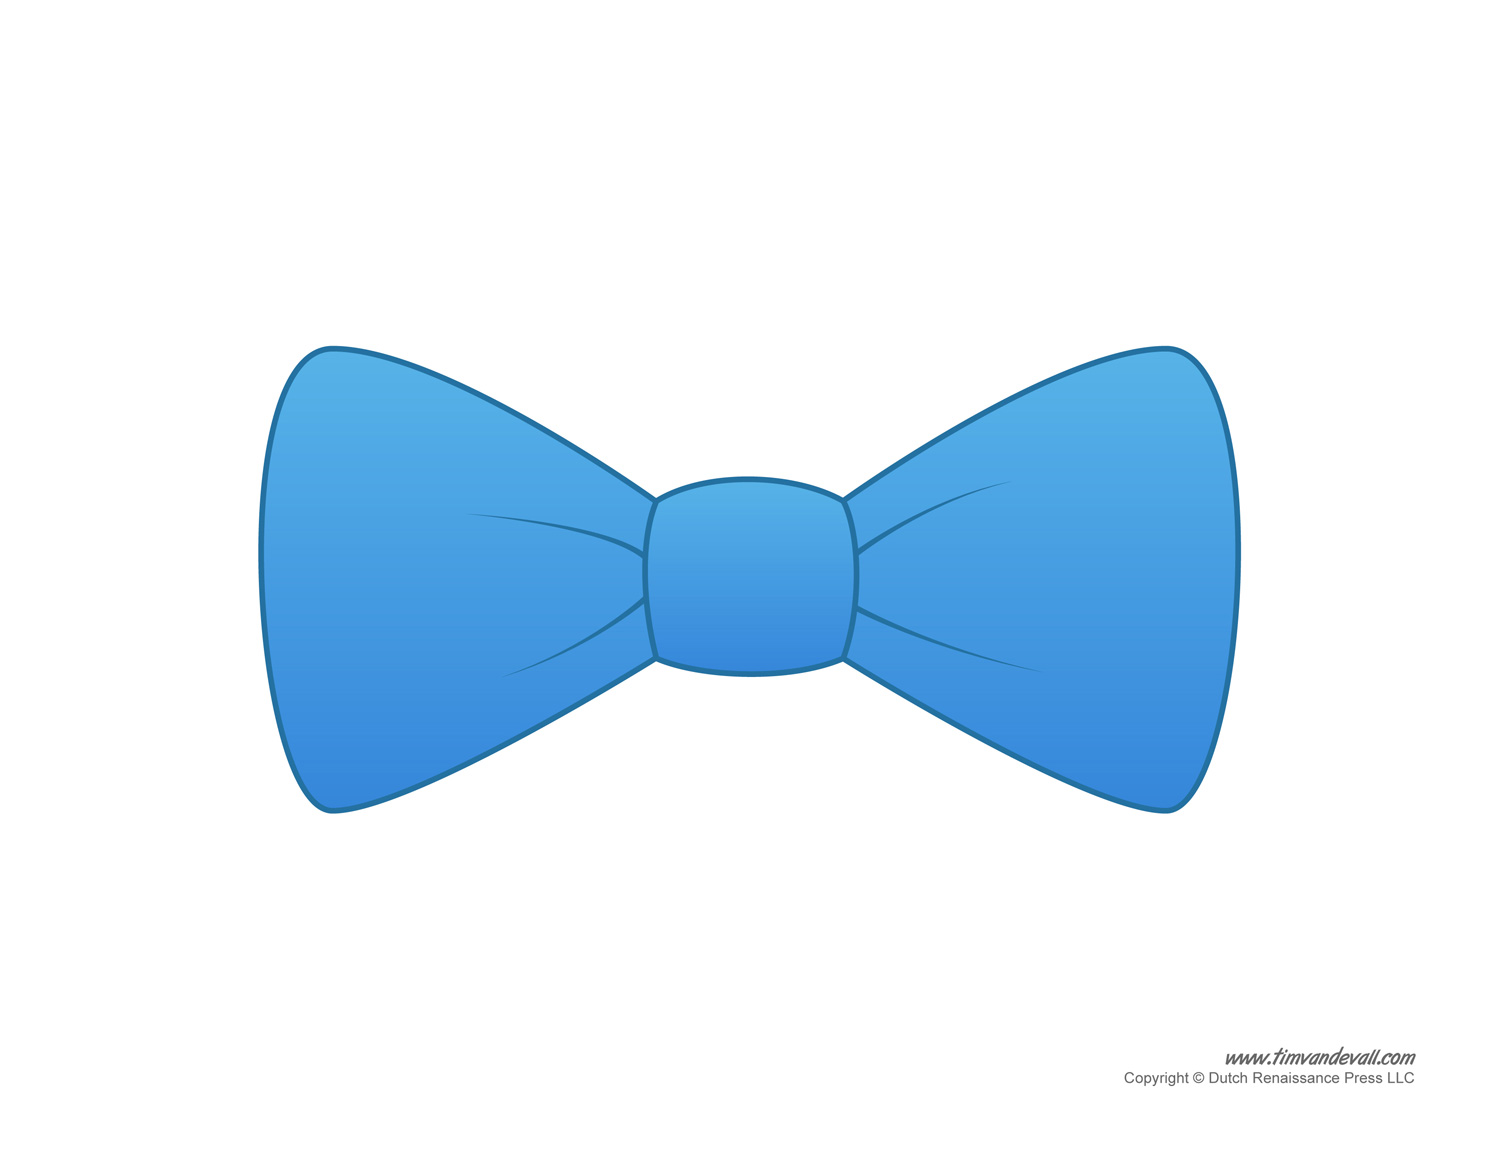 image relating to Bow Tie Template Printable named Paper Bow Tie Templates Bow Tie Printables